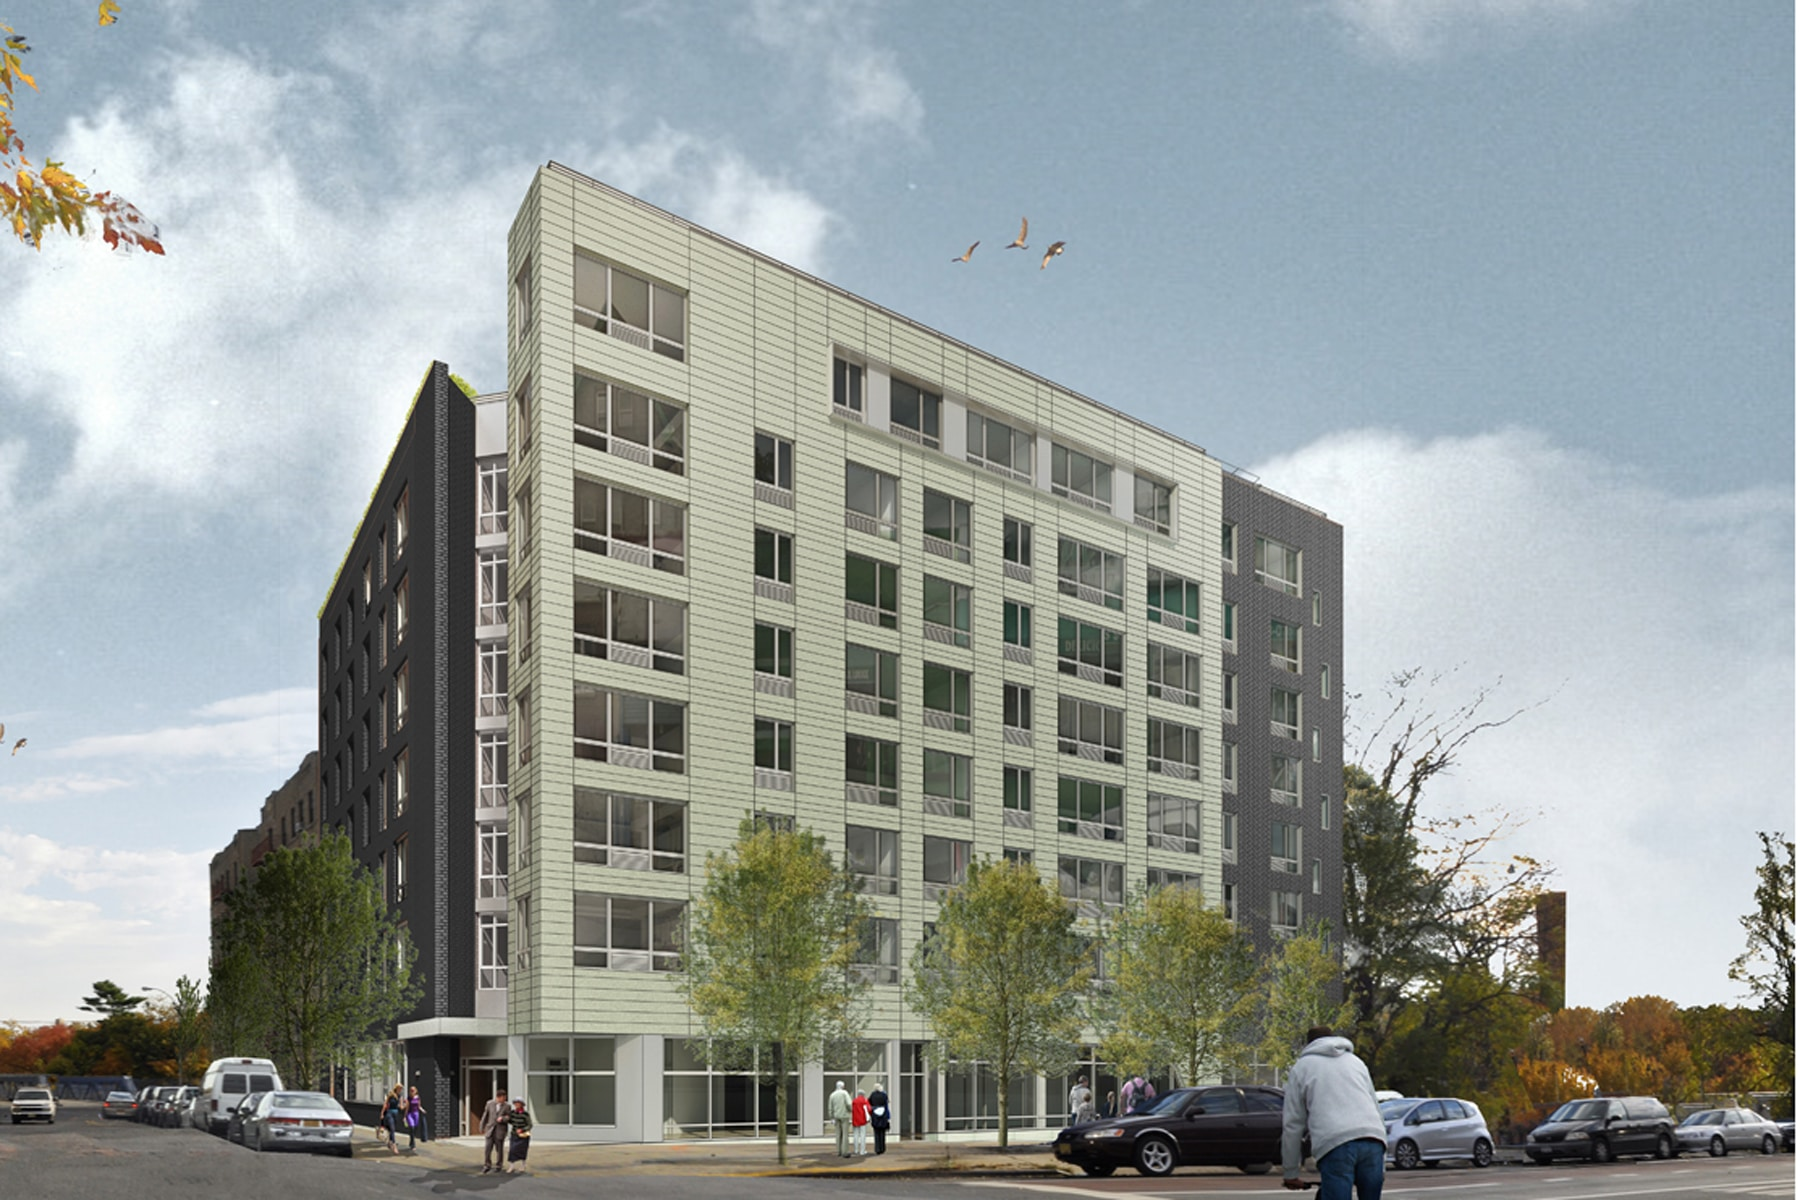 25 Jul Release Webster Green Affordable And Supportive Housing Development In The Bronx